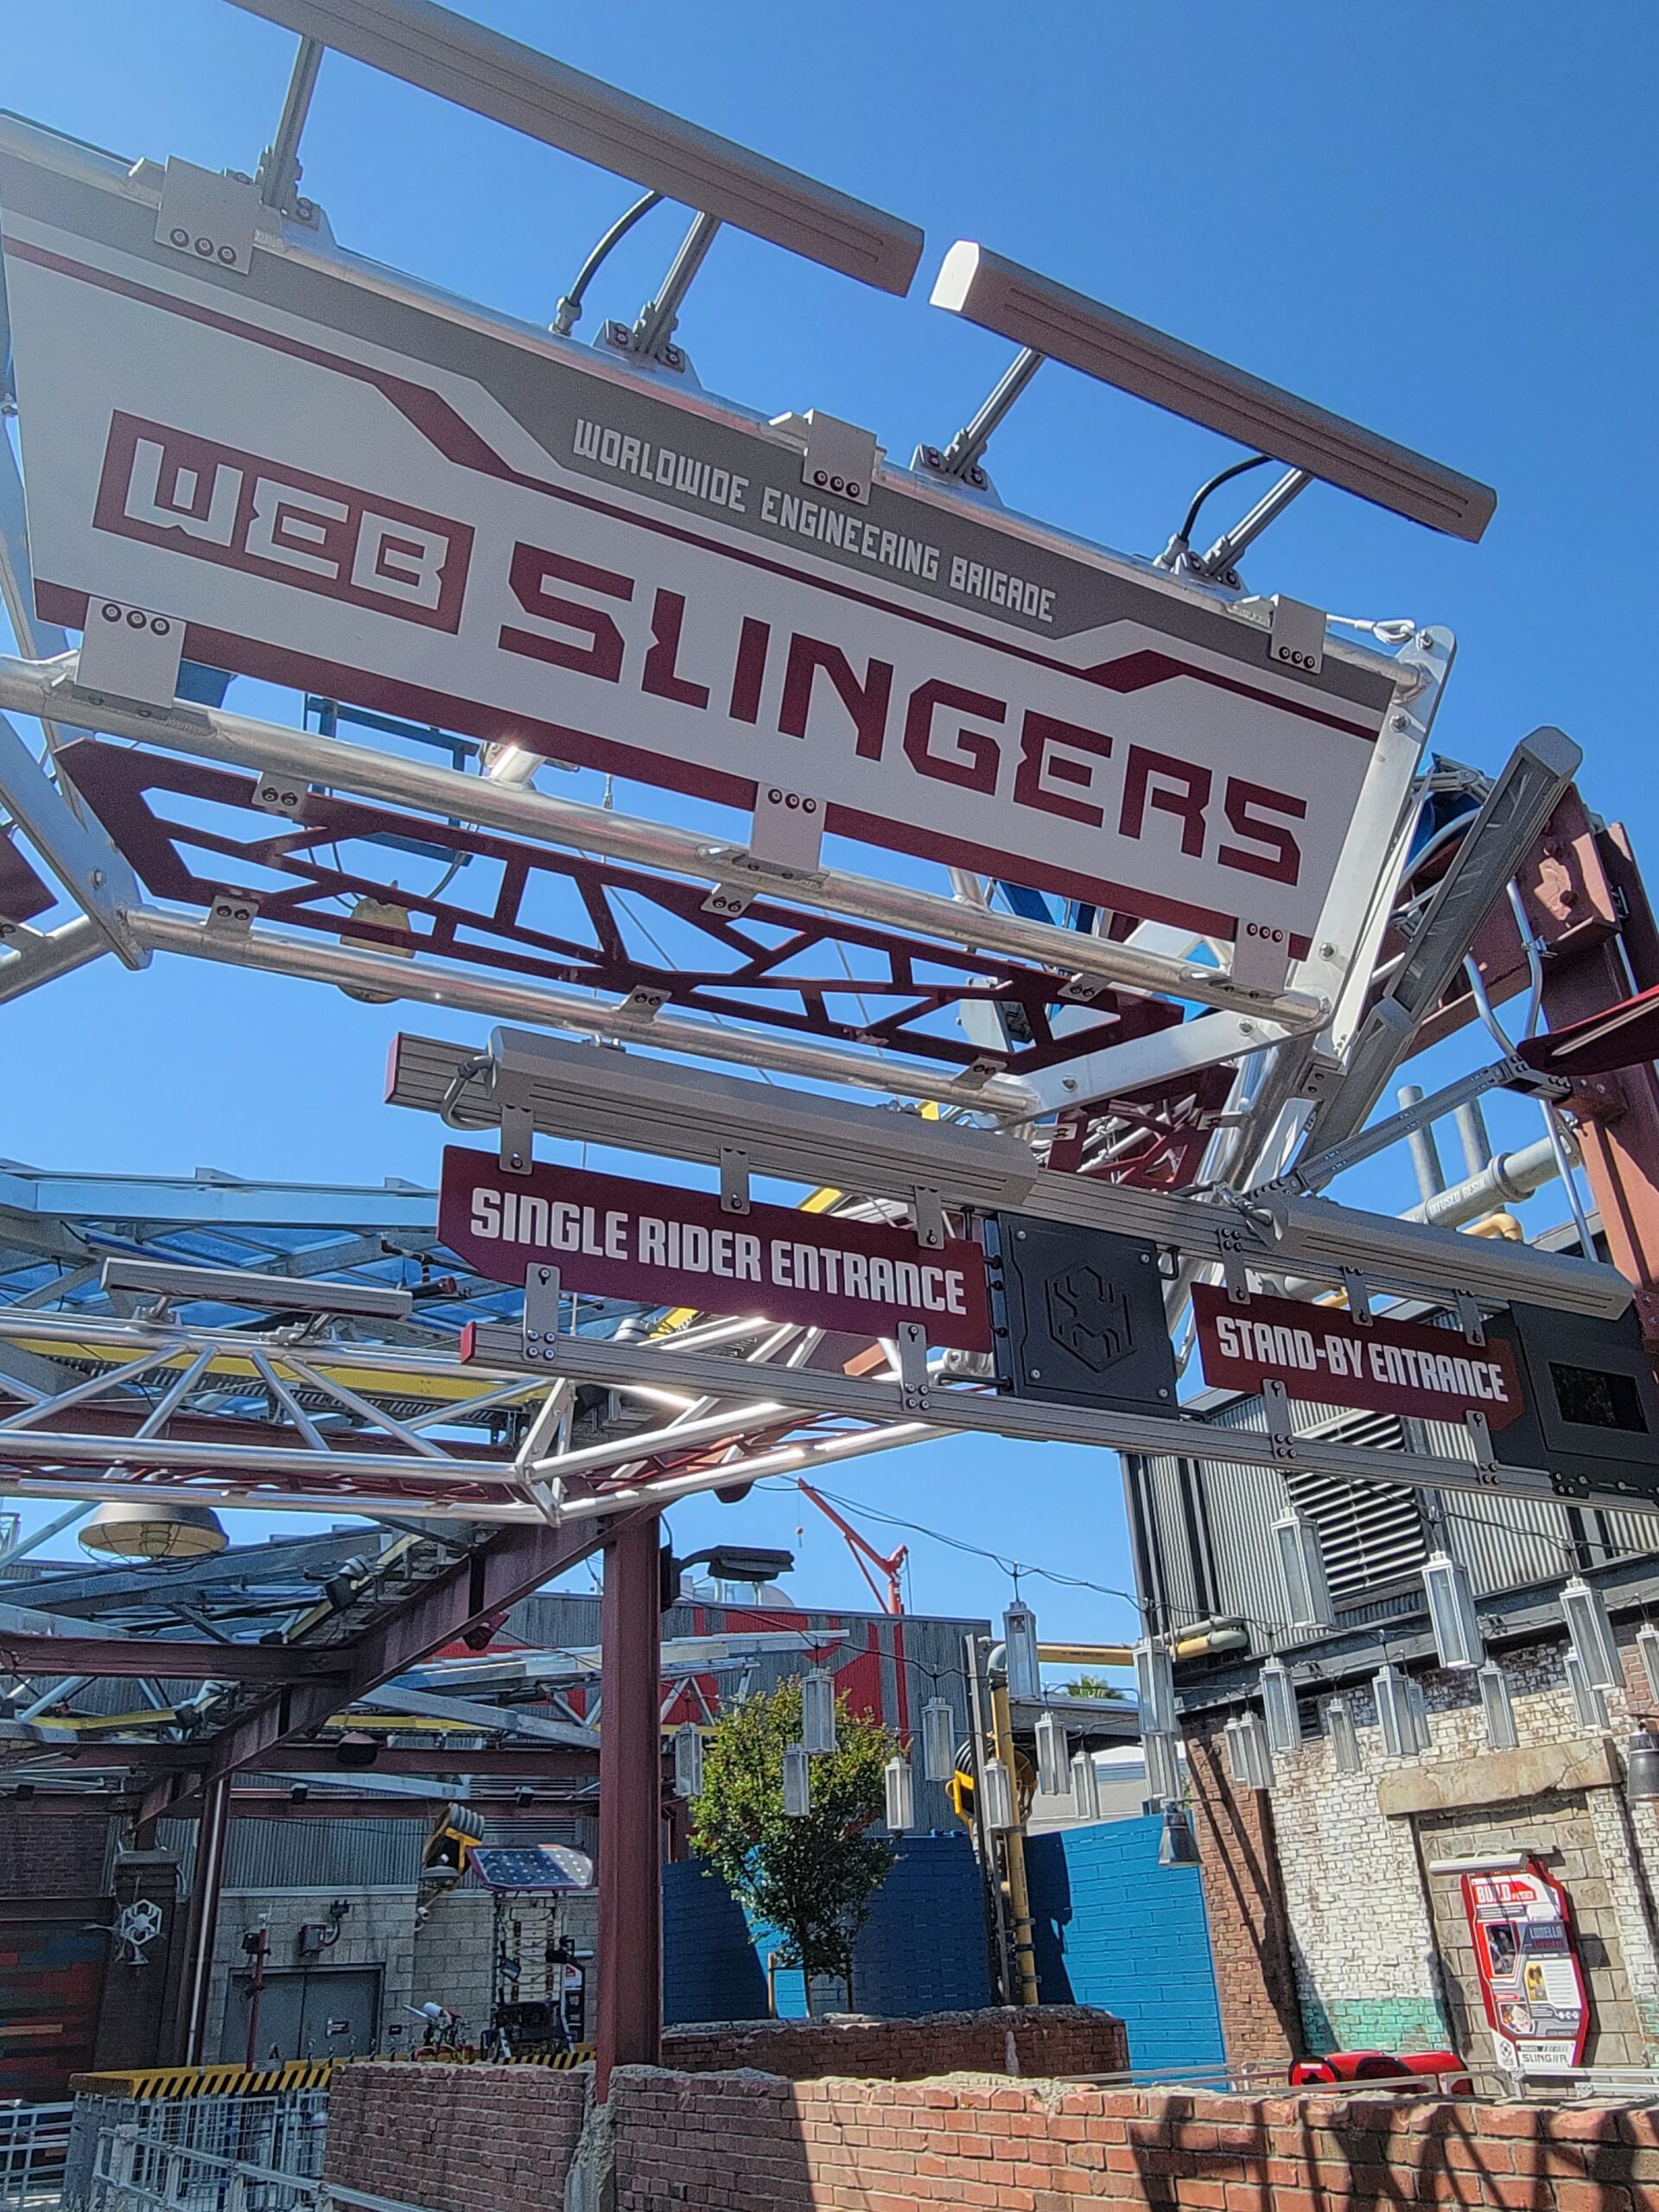 The entrance to WEB SLINGERS: A Spider-Man Adventure ride at Avengers Campus Disneyland